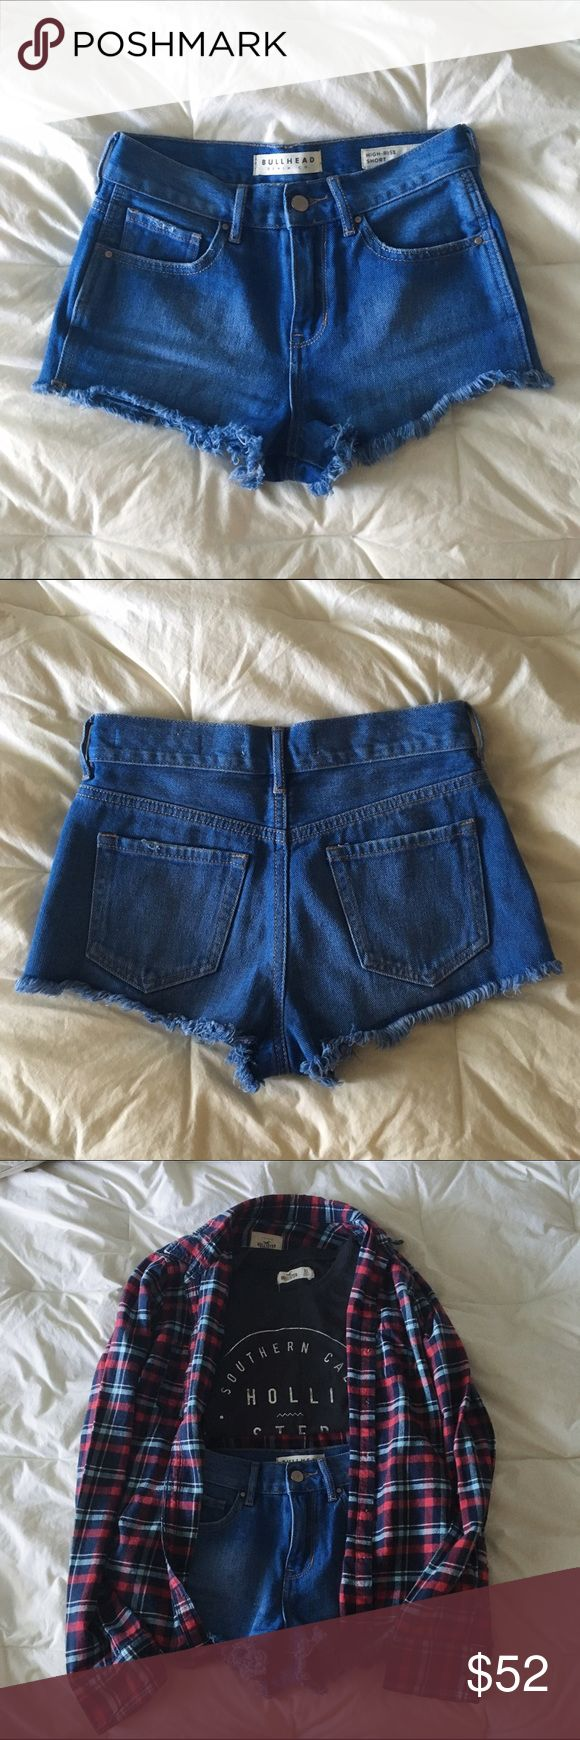 """Blue High Rise Denim Shorts! high rise denim shorts from Pacsun, selling because I never really wear them! Wore maybe once! Purchased them from Pacsun & tag says it's from """"Bullhead"""" Denim Co.! (price is negotiable) PacSun Shorts Jean Shorts"""